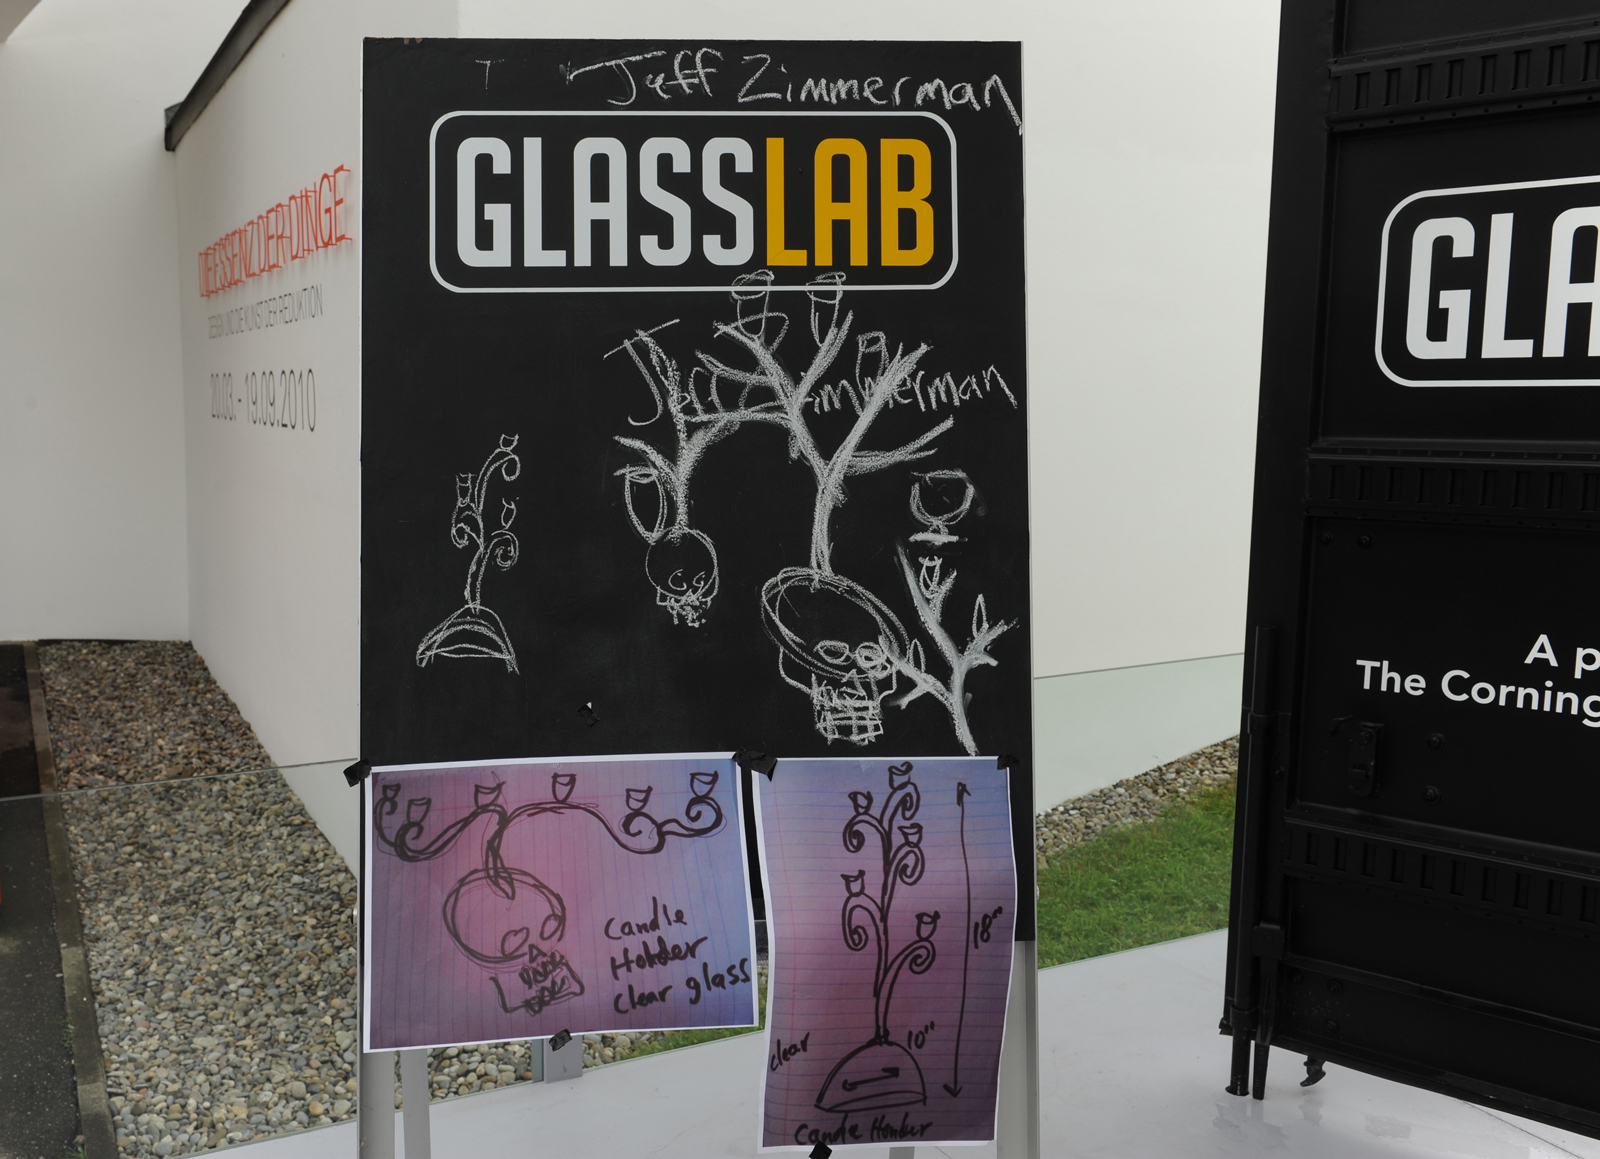 Designer Jeff Zimmerman at GlassLab